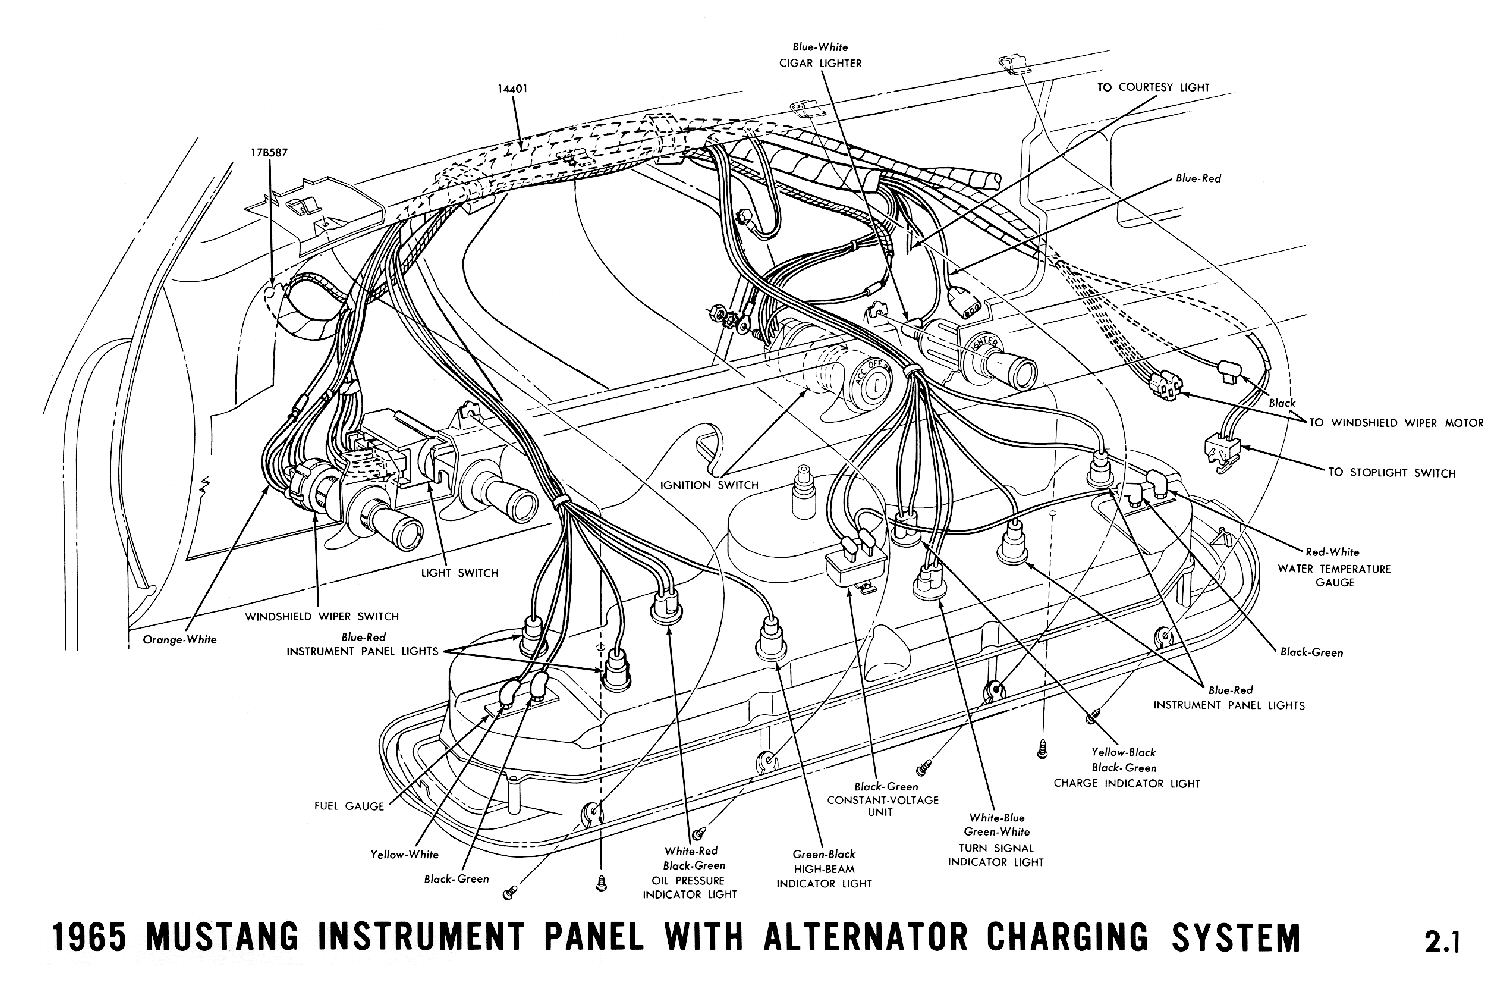 1965a 1965 mustang wiring diagrams average joe restoration 1969 mustang voltage regulator wiring diagram at mifinder.co